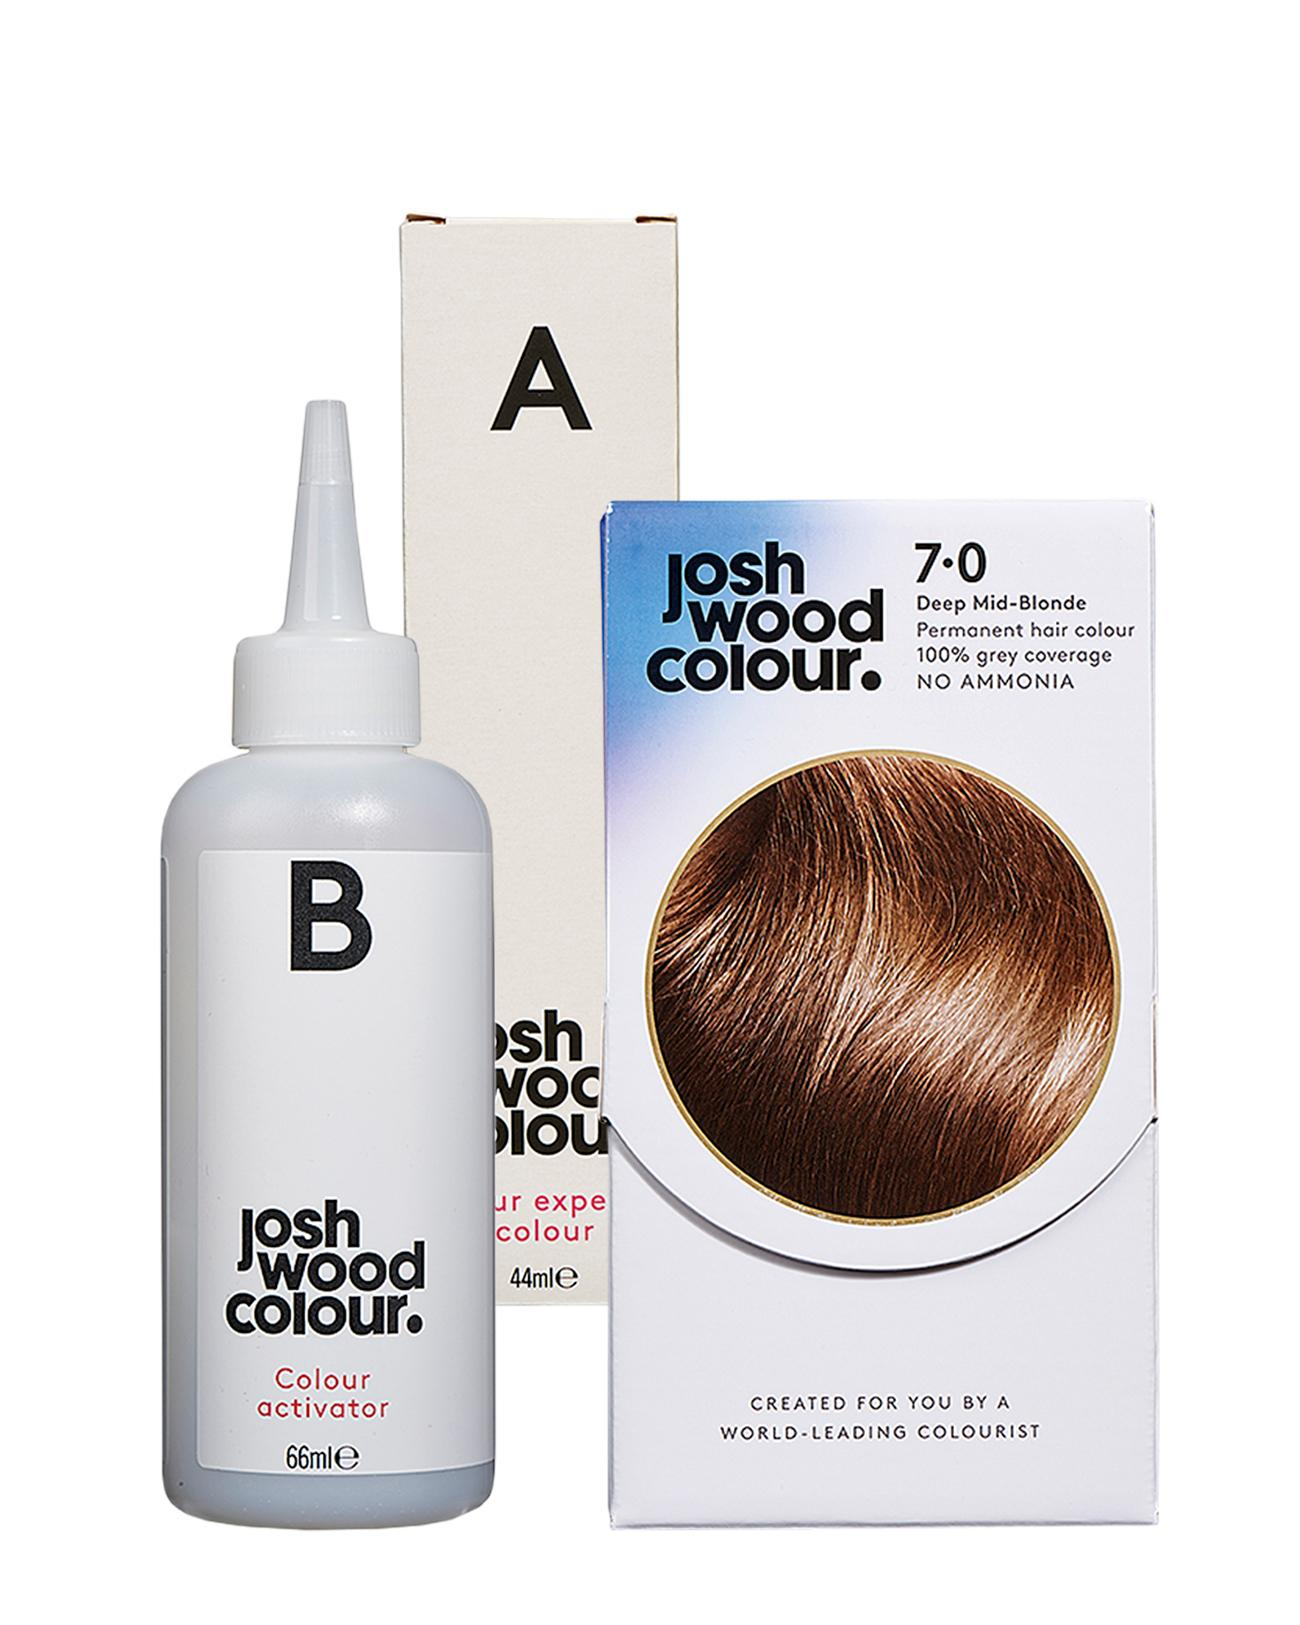 Kevin dutton also will the josh wood colour system change way you do your hair at rh thetimes